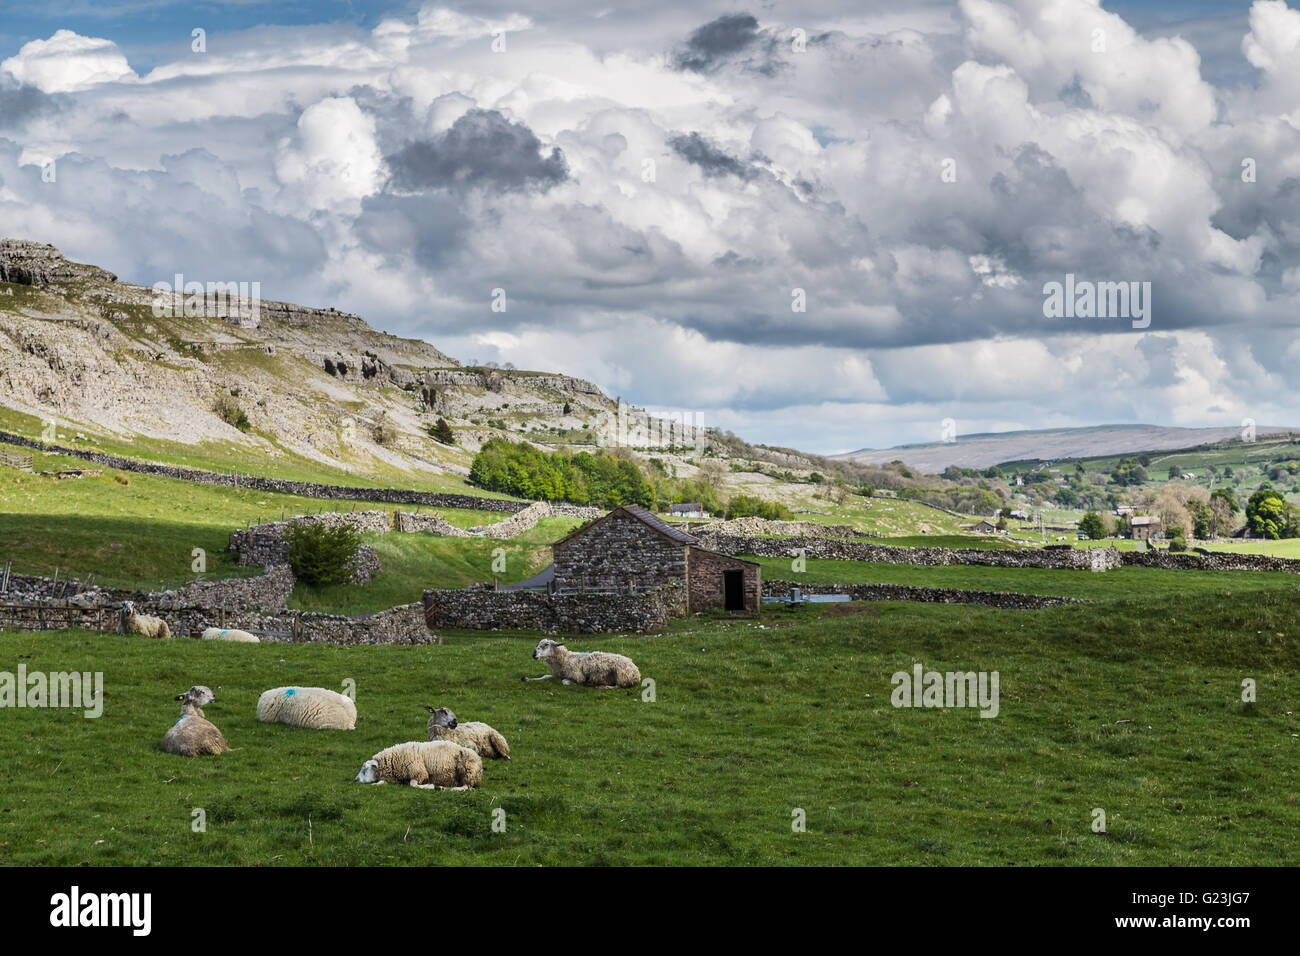 Moody clouds make way for the rocky hillside to be lit up by the spring sun - seen along the Ingleton waterfalls - Stock Image